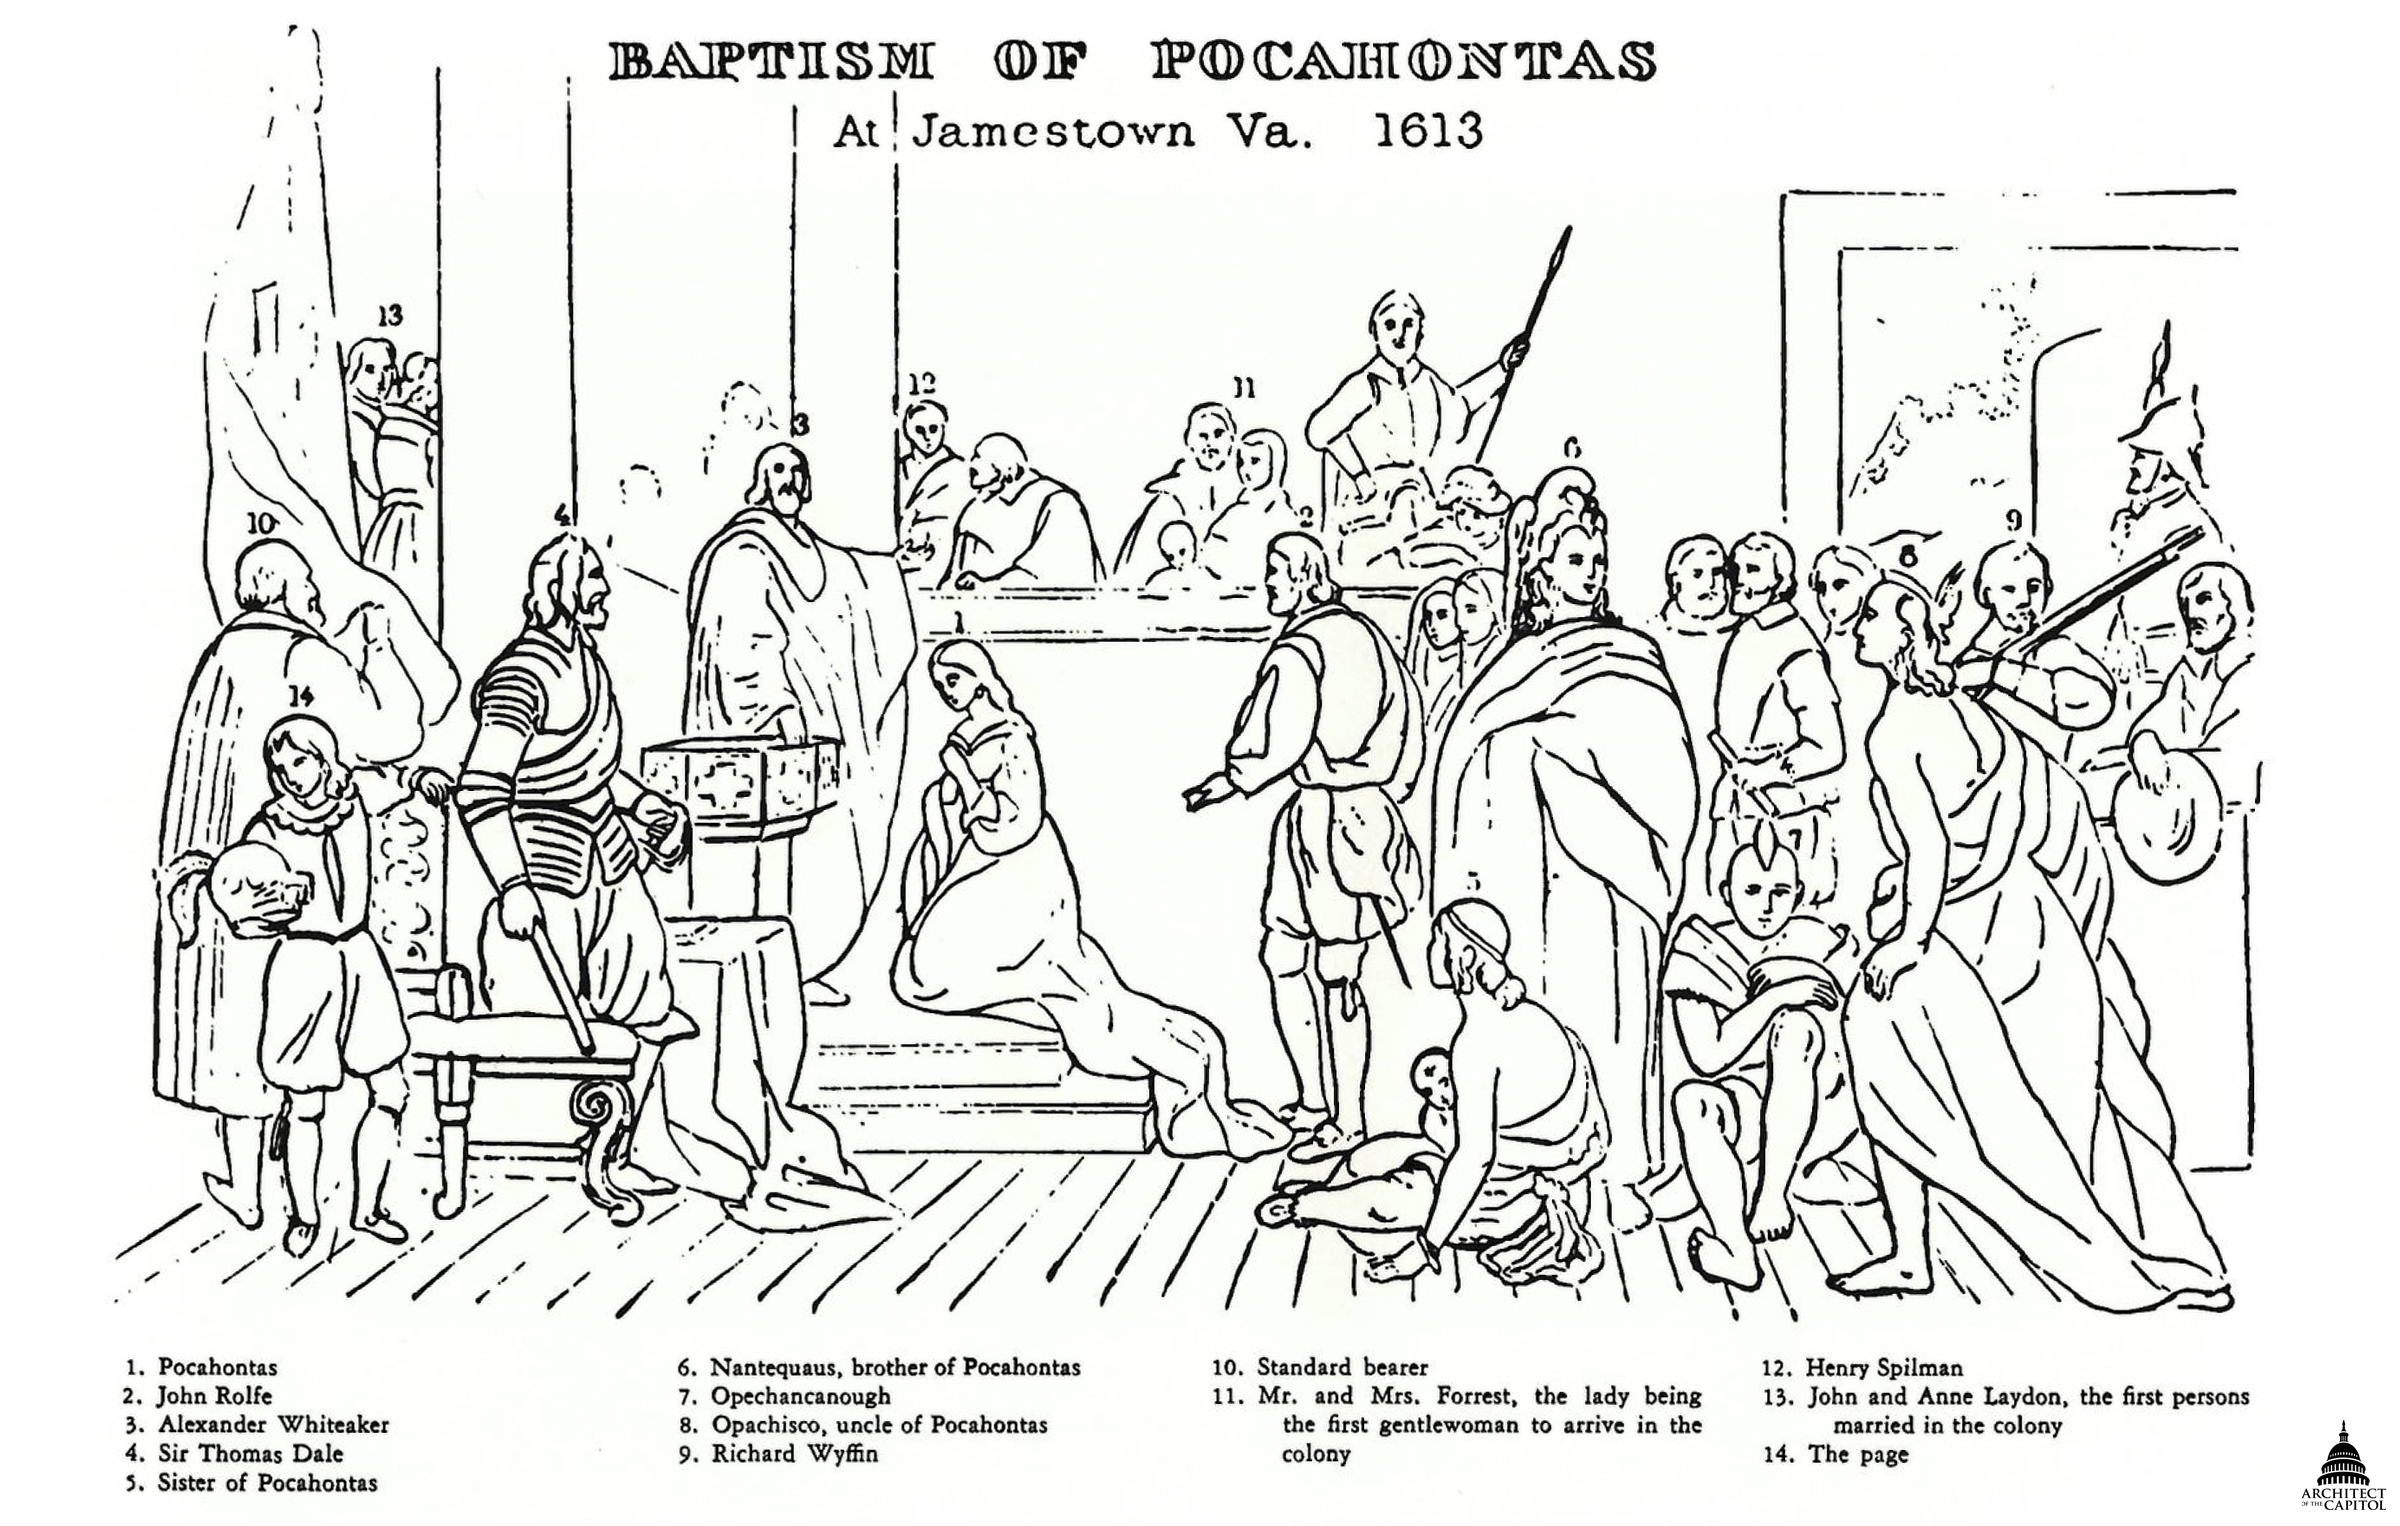 Baptism of Pocahontas | Architect of the Capitol